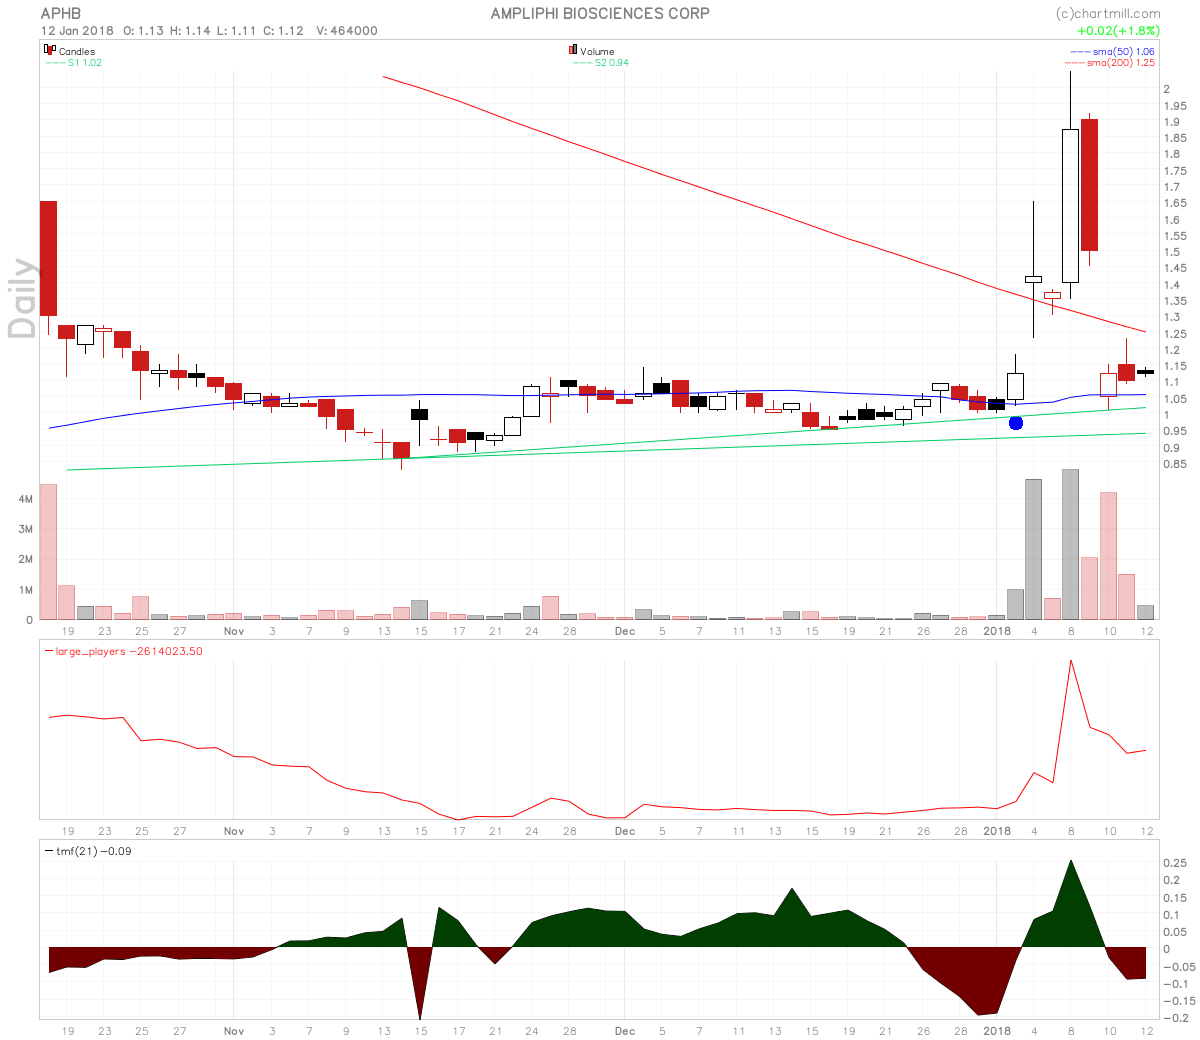 Ampliphi Biosciences Stock 770% Upside From Current Price